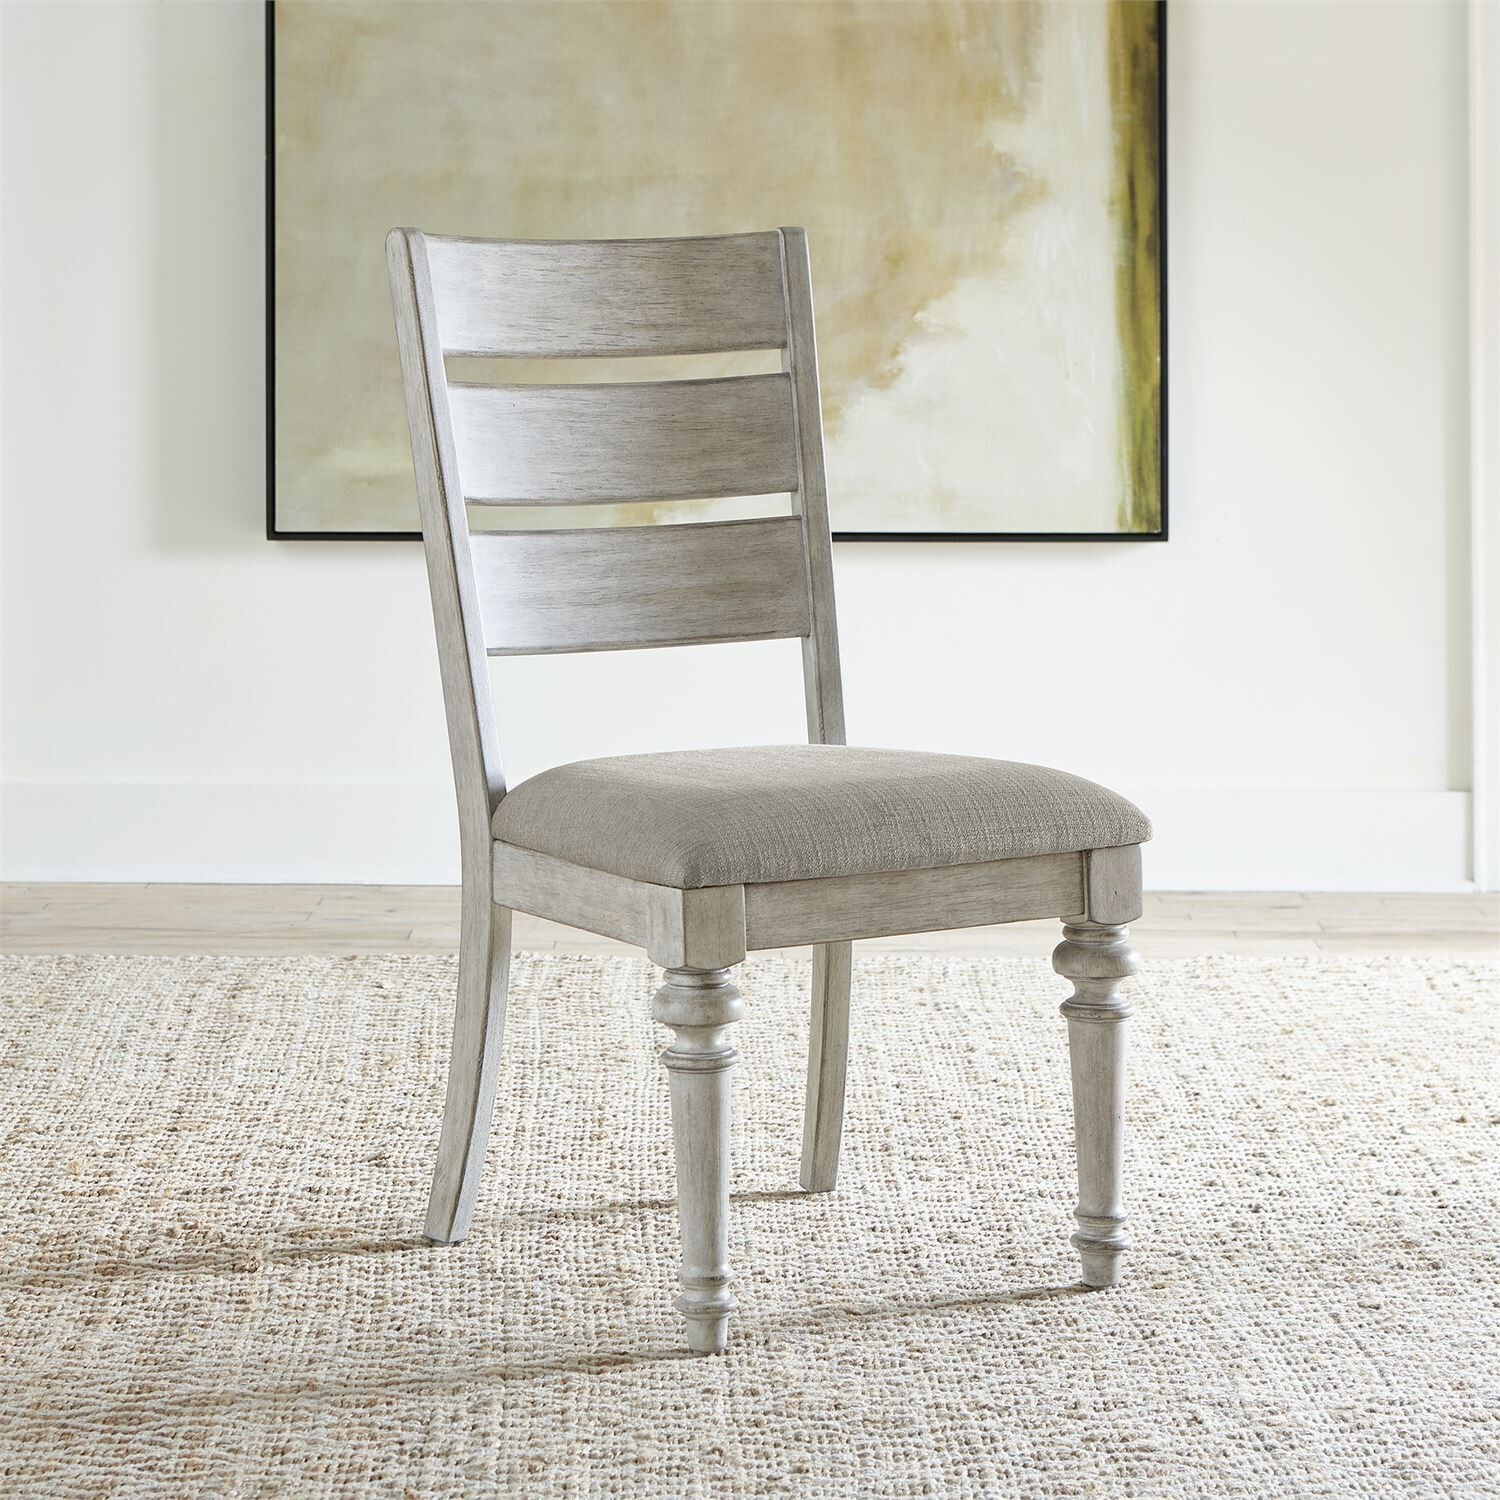 Heartland Ladder Back Side Chair by Liberty Furniture at Northeast Factory Direct